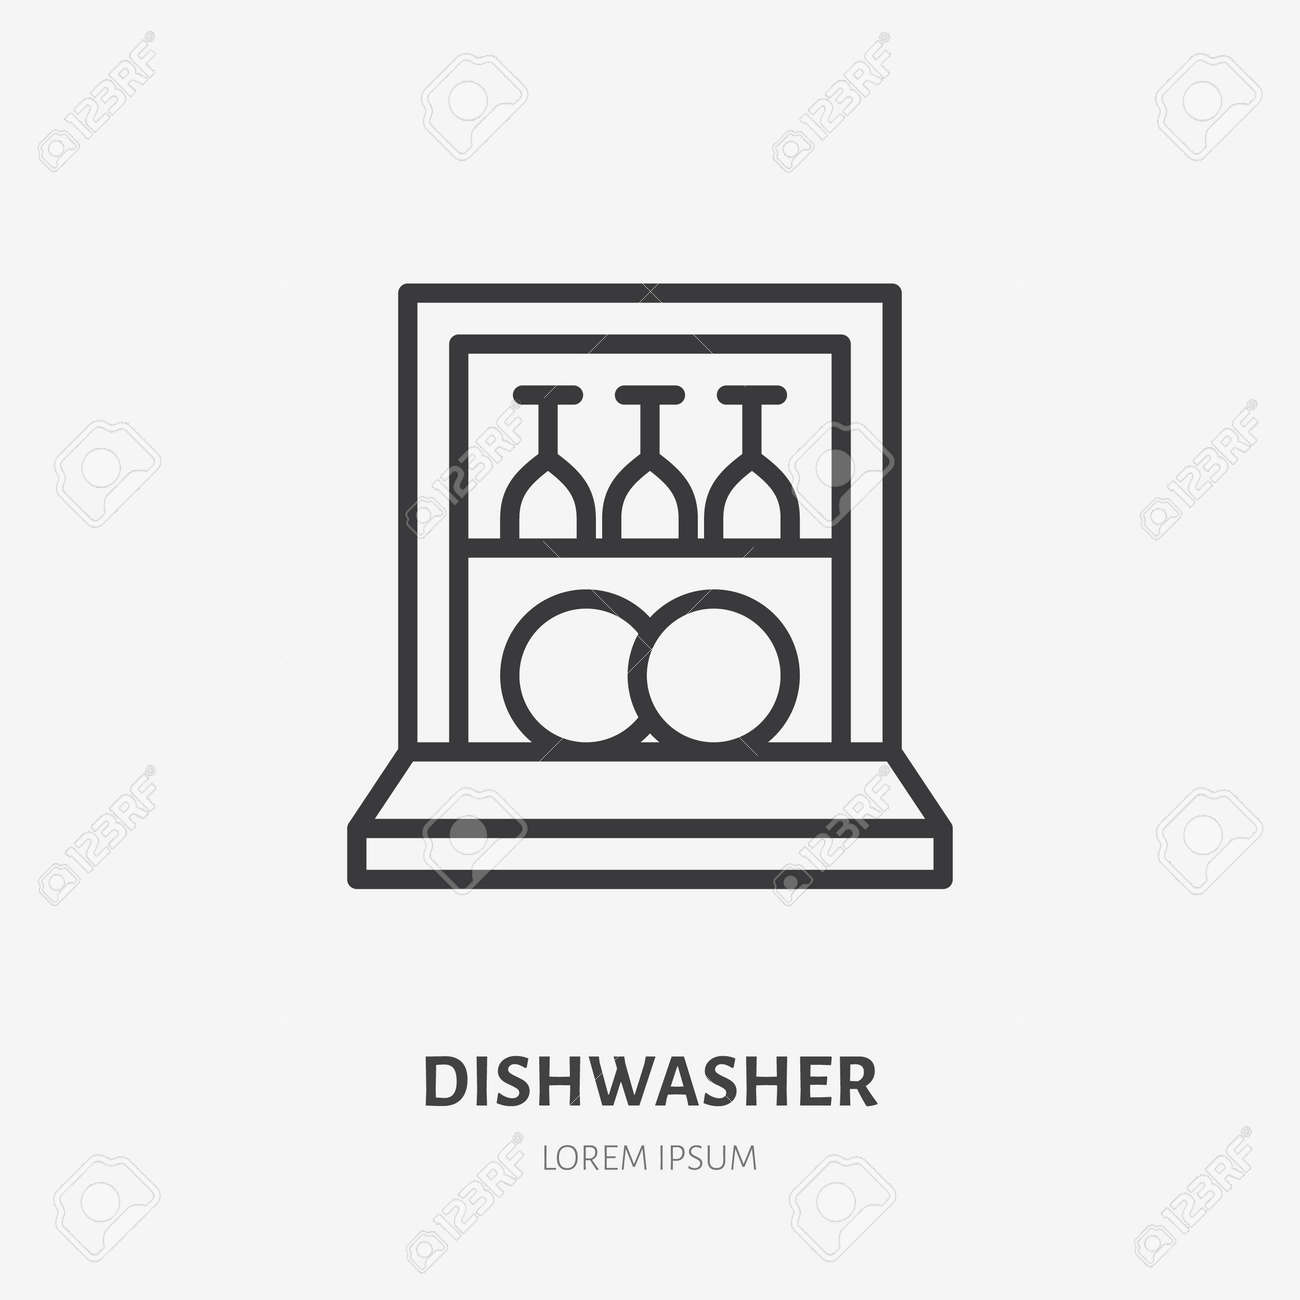 Dishwasher flat line icon. Vector outline illustration of housekeeping equipment. Black color thin linear sign for dish clean machine. - 163160942